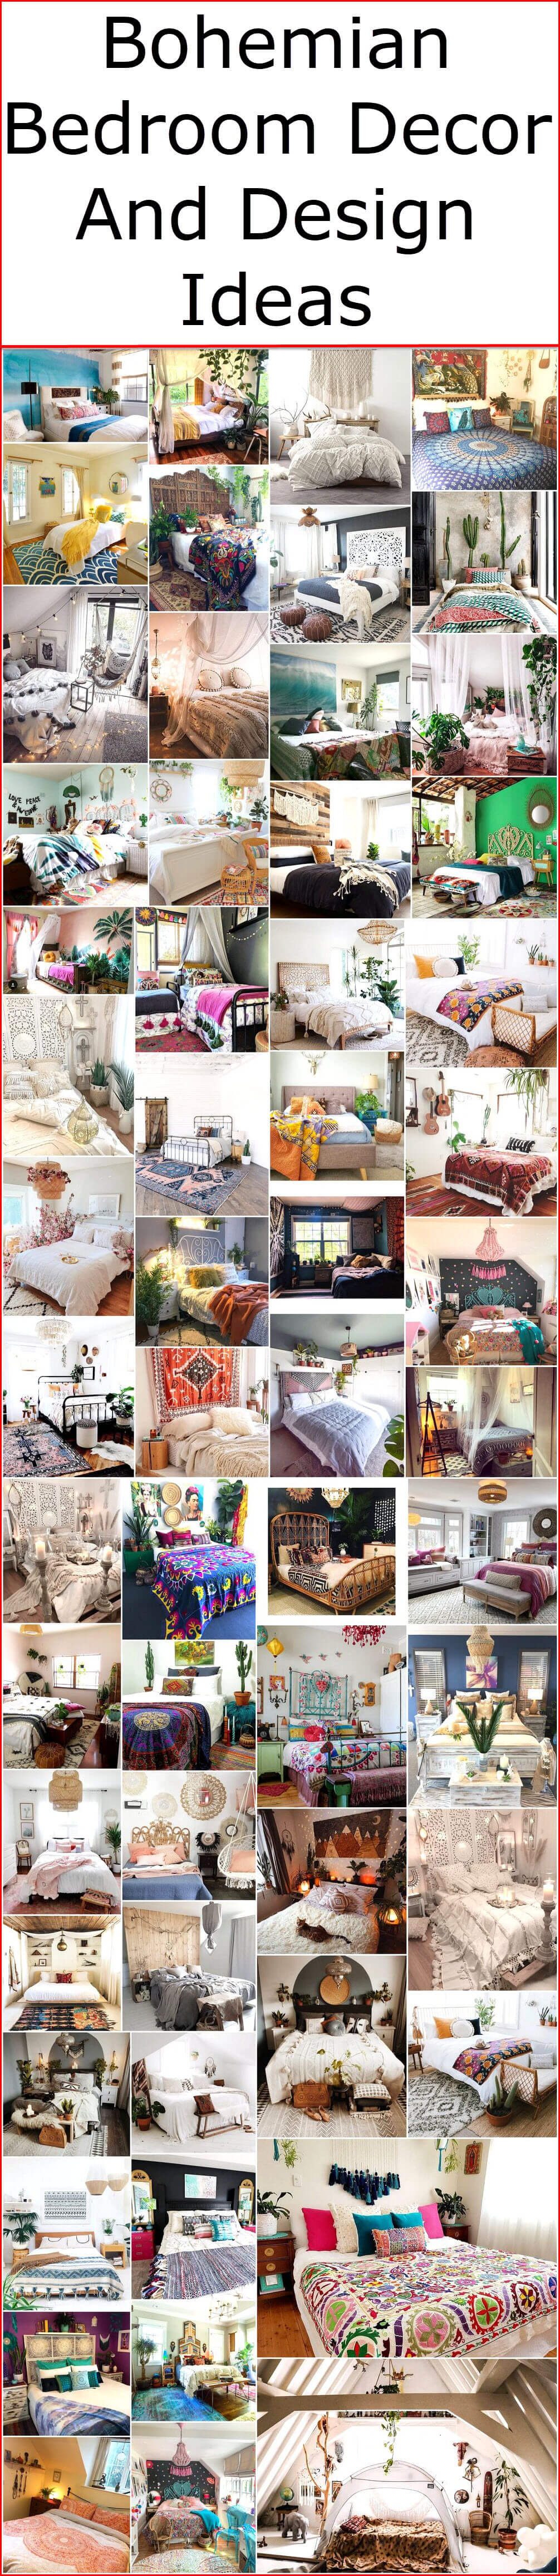 of december tumblr bedroom room published beautiful bohemian in diy hippie awesome inspired at decor amp